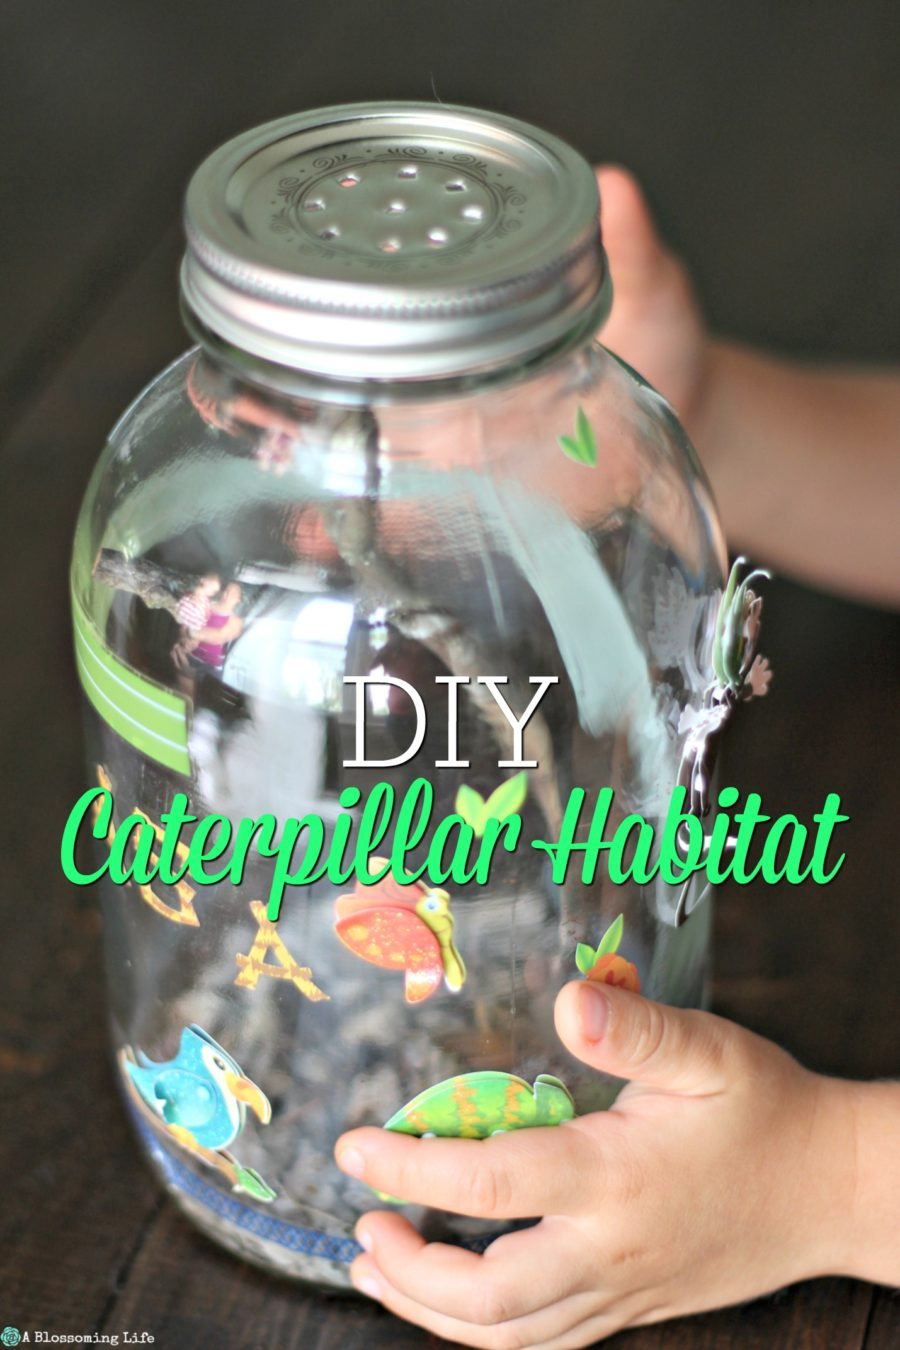 kid hands holding a DIY Caterpillar Habitat made from a mason jar and covered with stickers